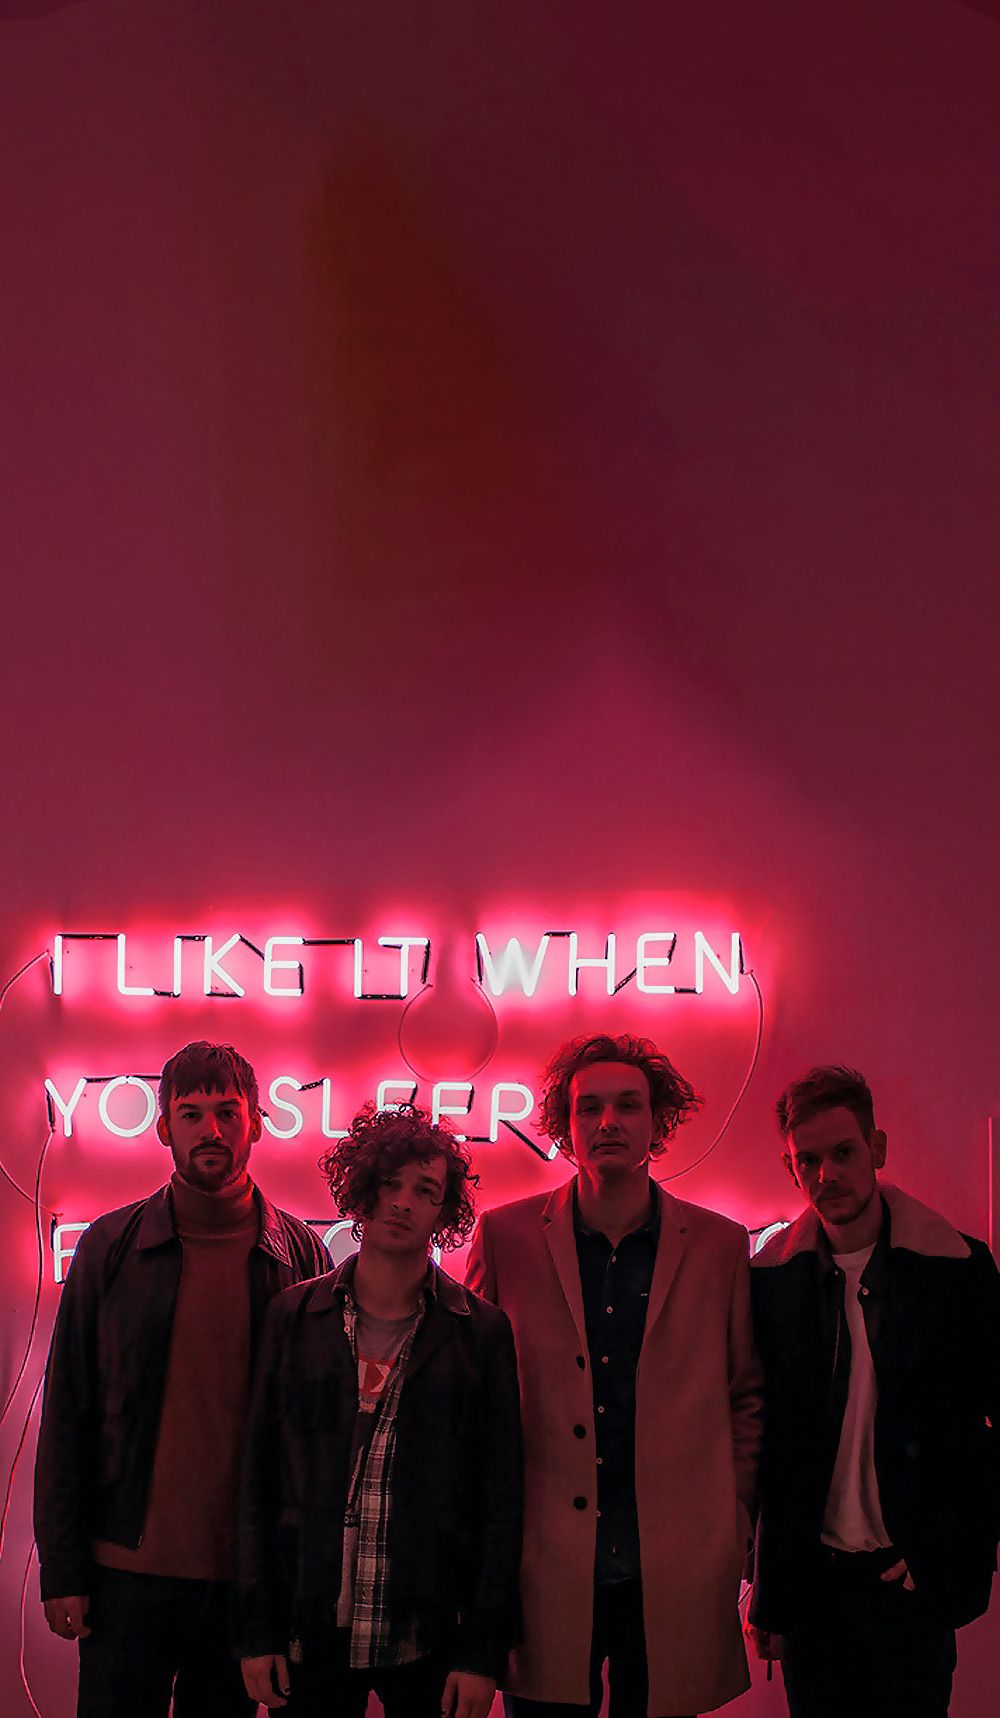 The 1975 Wallpaper The 1975 en 2019 Fondos de pantalla 1000x1718